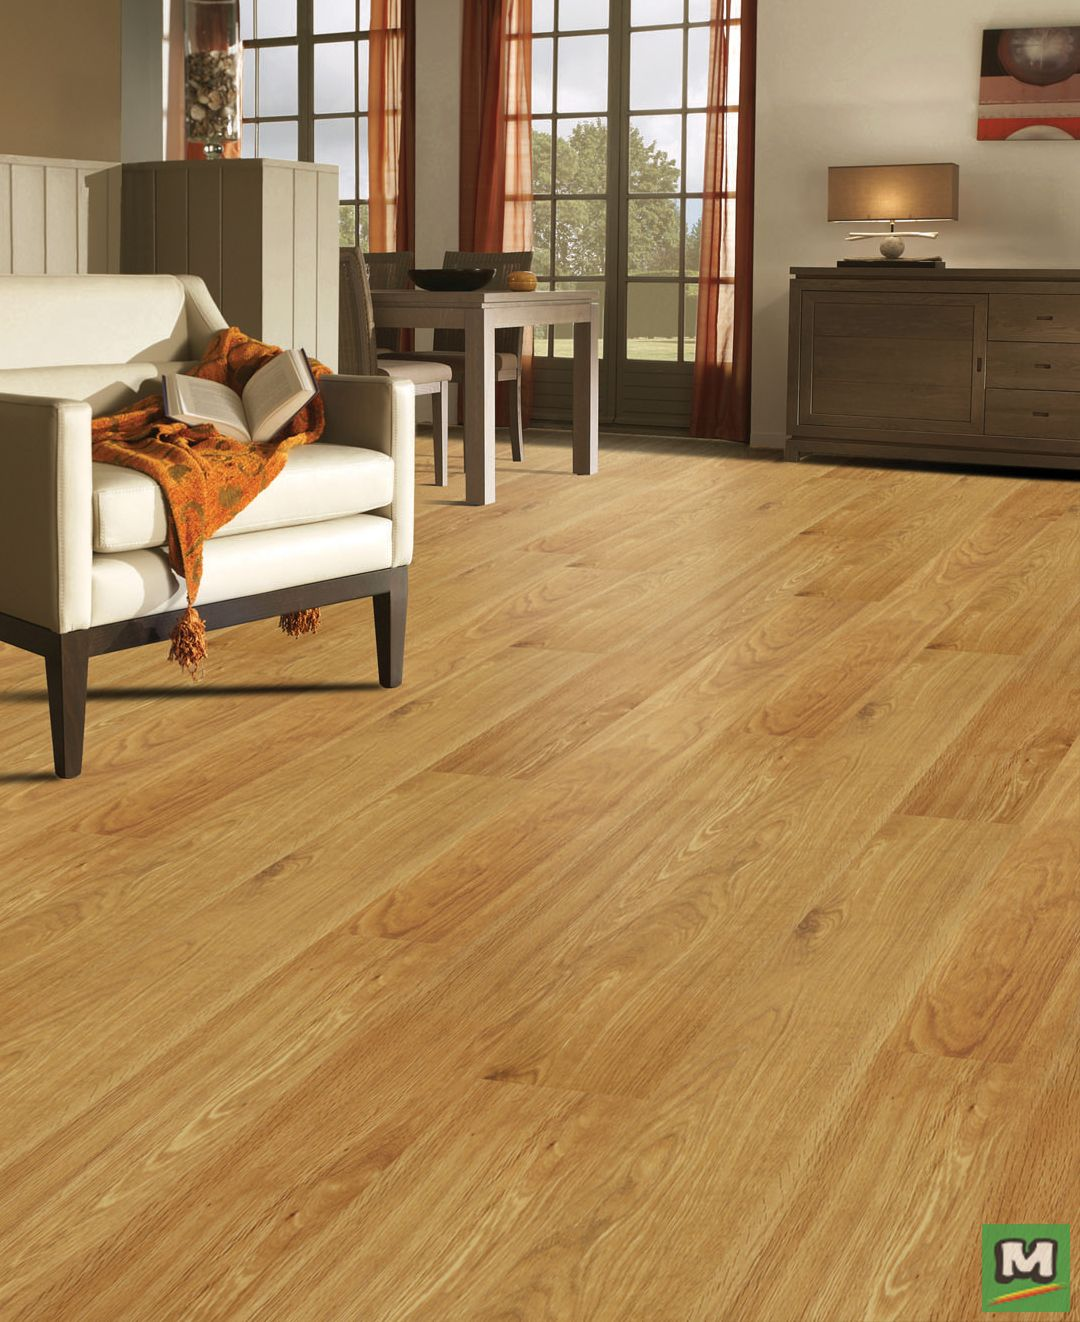 Want Easy To Install Beautiful Wood Floors Then Choose Ez Click Luxury Savanna Oak Floating Vinyl Plank And Match Any Decor This Flooring Is Waterproof